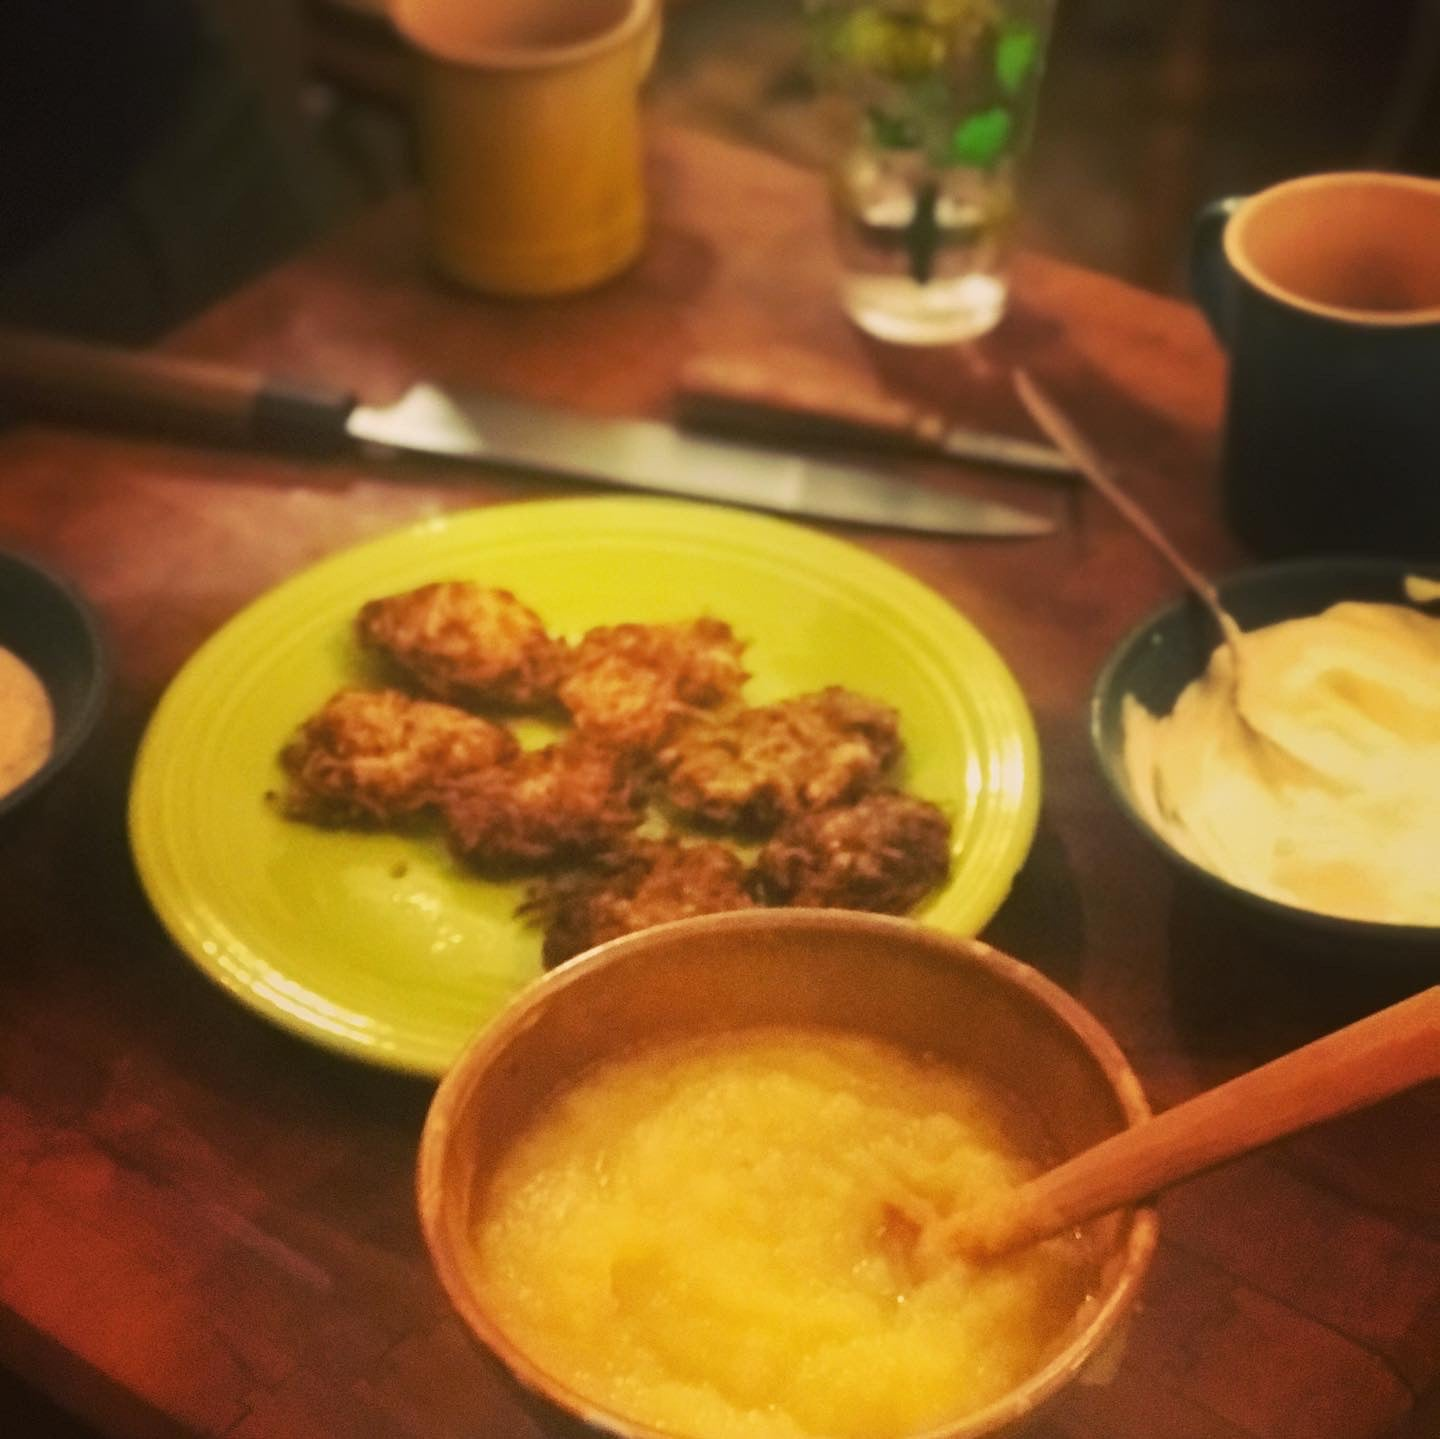 Classic Potato Latkes and Benny's Homemade Apple Sauce